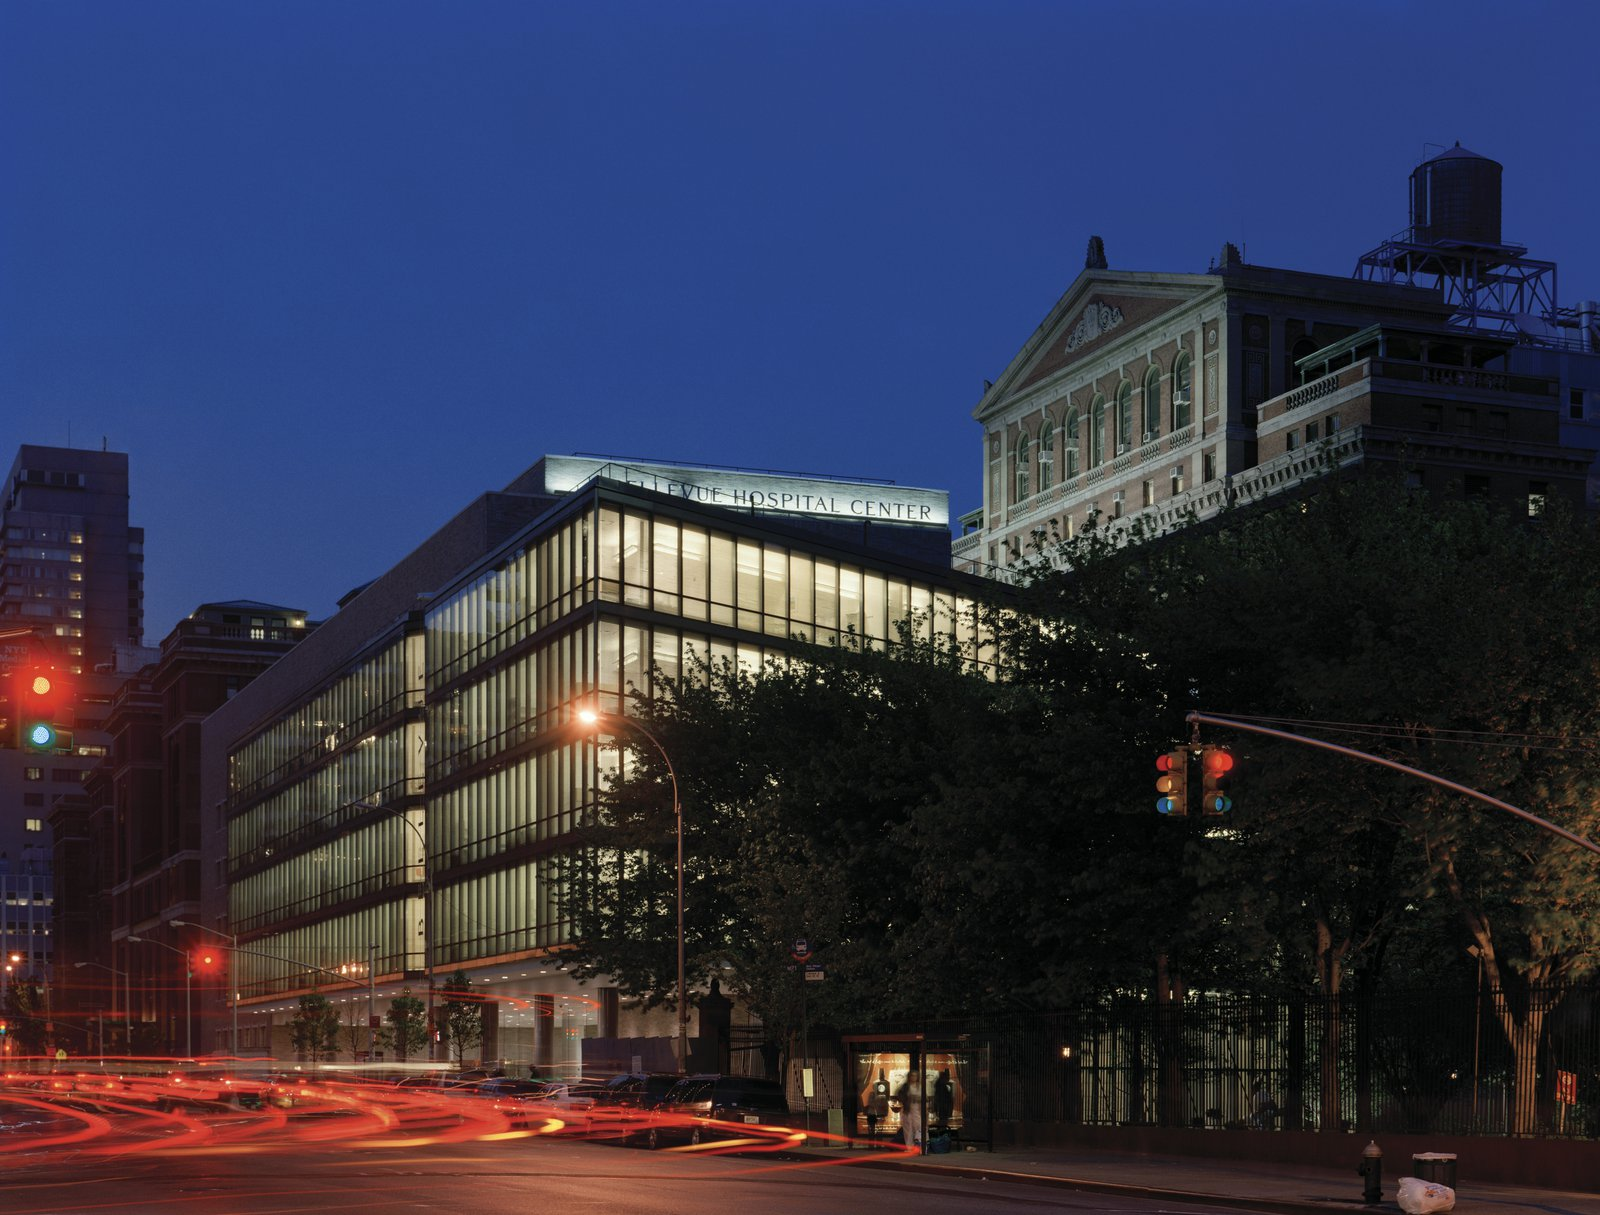 American council of engineering companies of new york 2006 bellevue hospital history